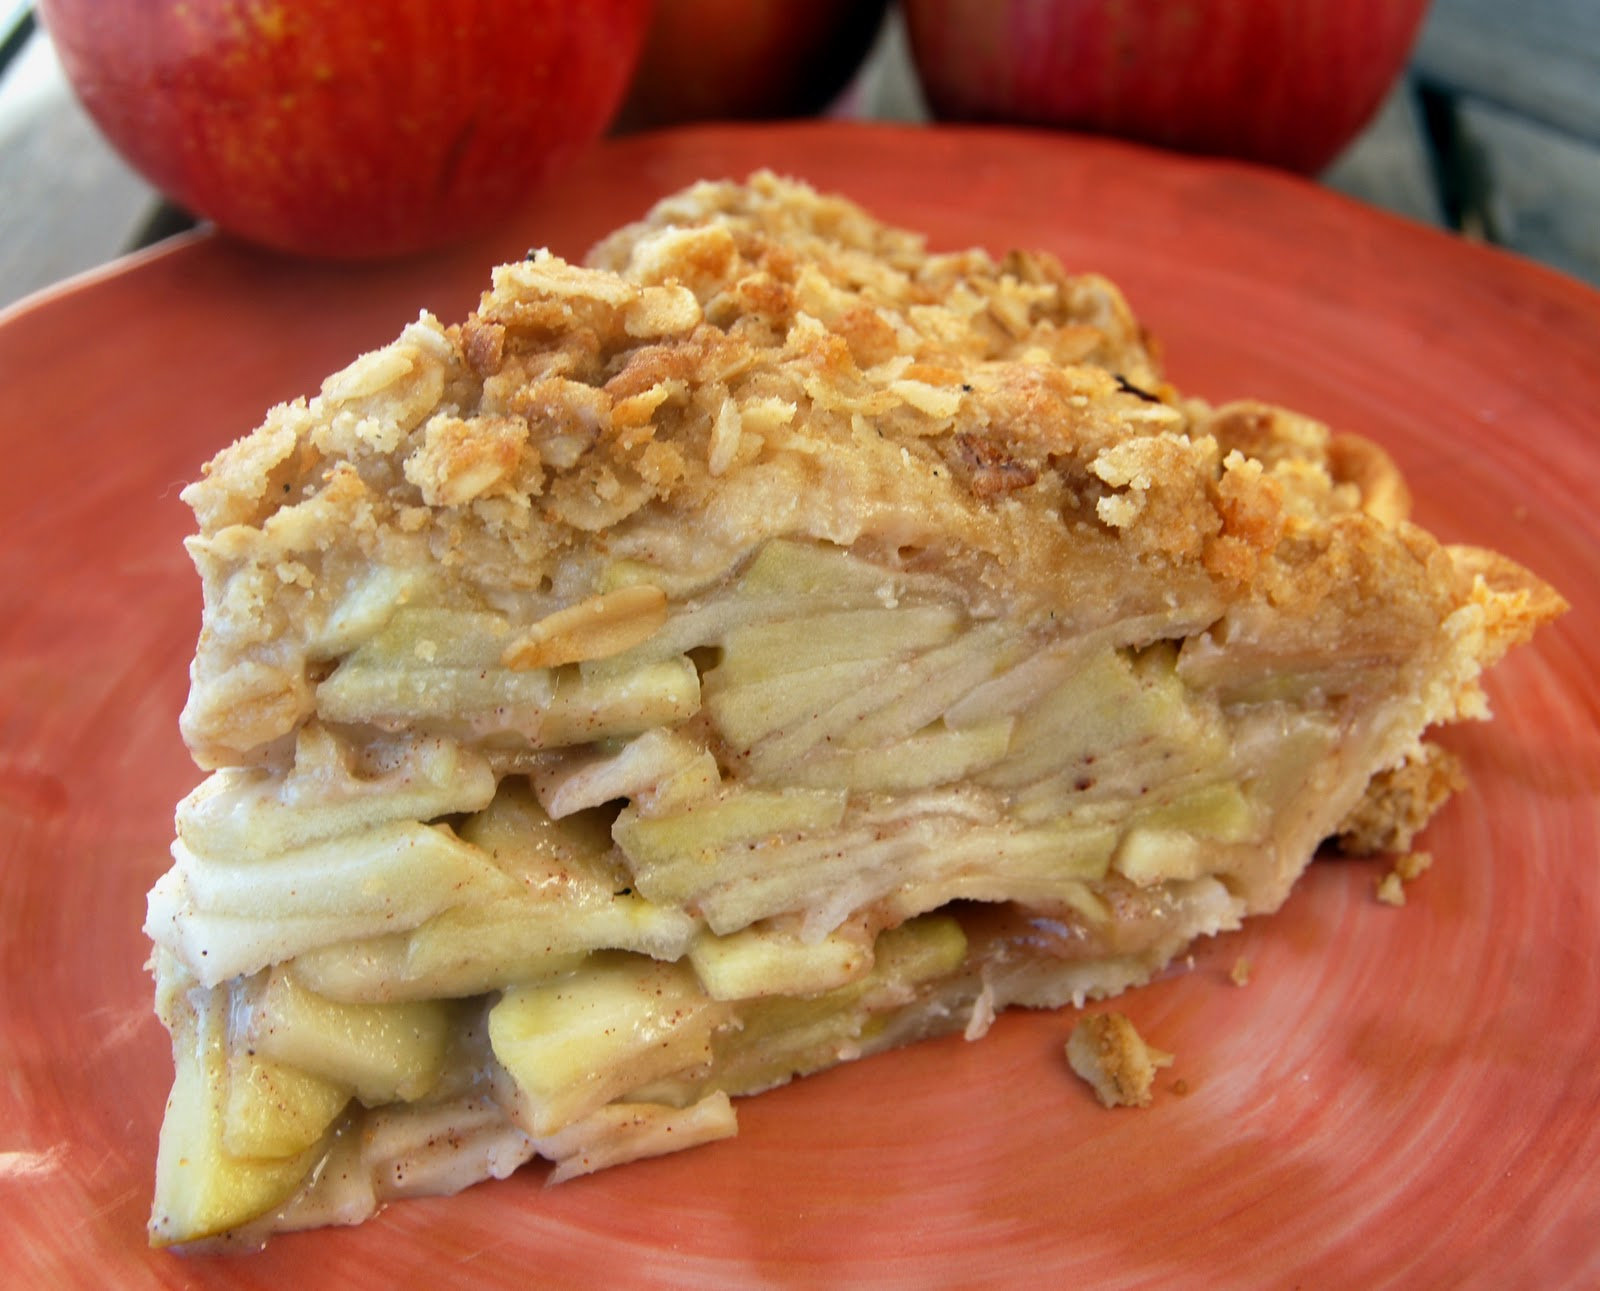 Scott's Old Fashioned Apple Pie - Gonna Want Seconds